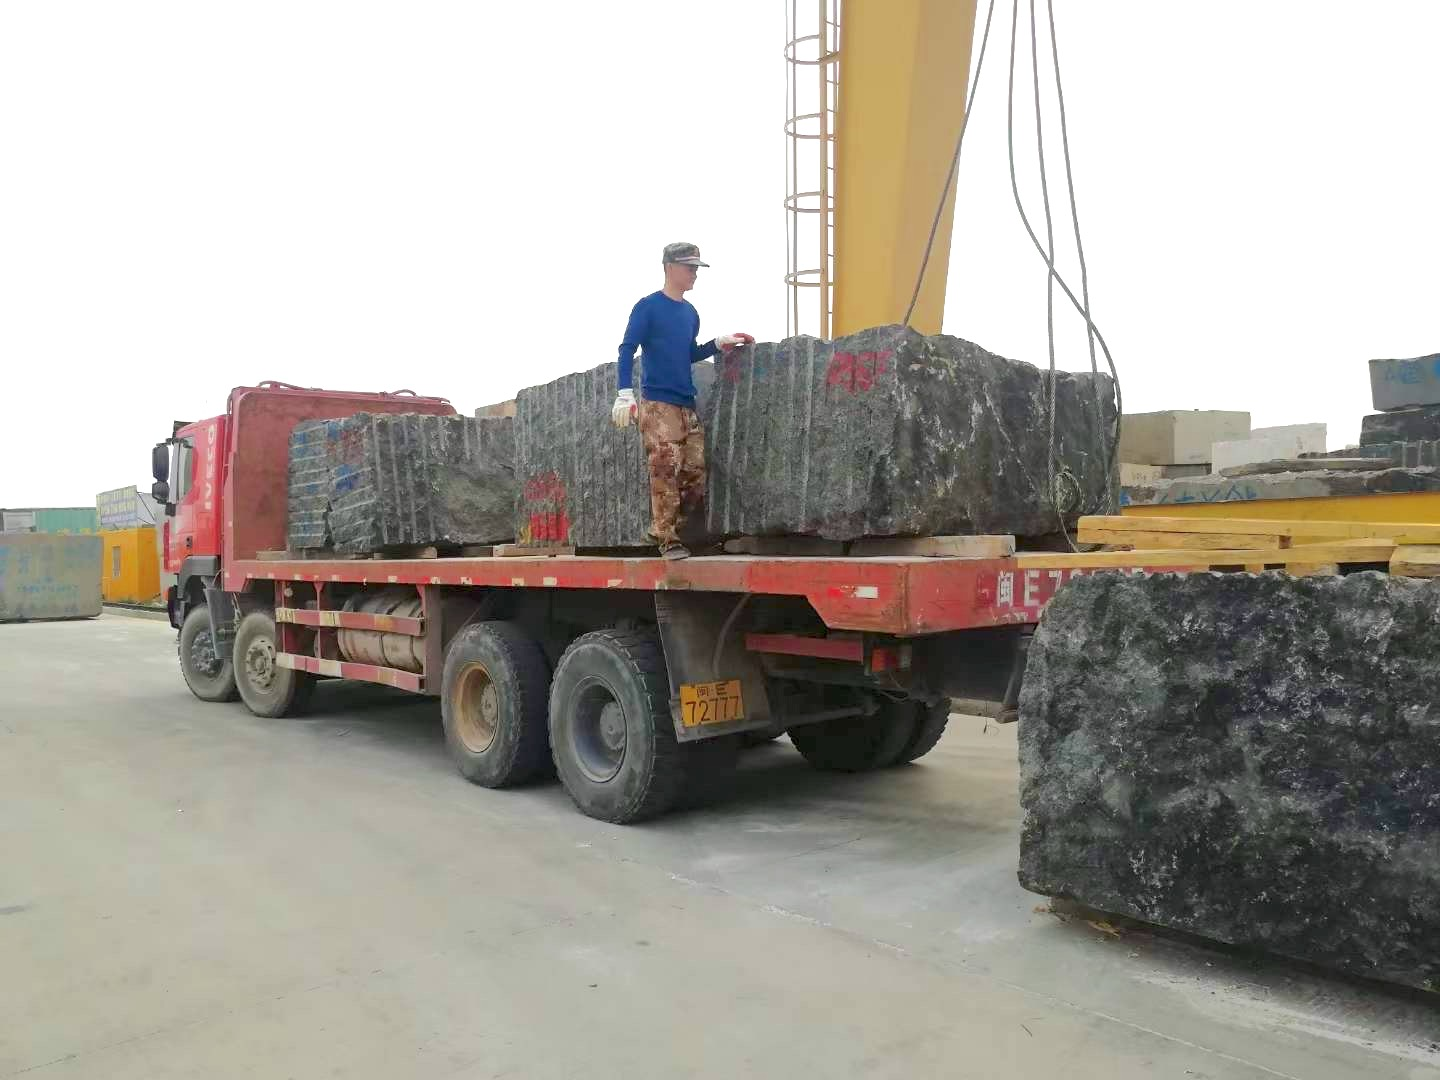 Volga Blue block. New arrival to our warehouse in China. фото 61765abd5caf4